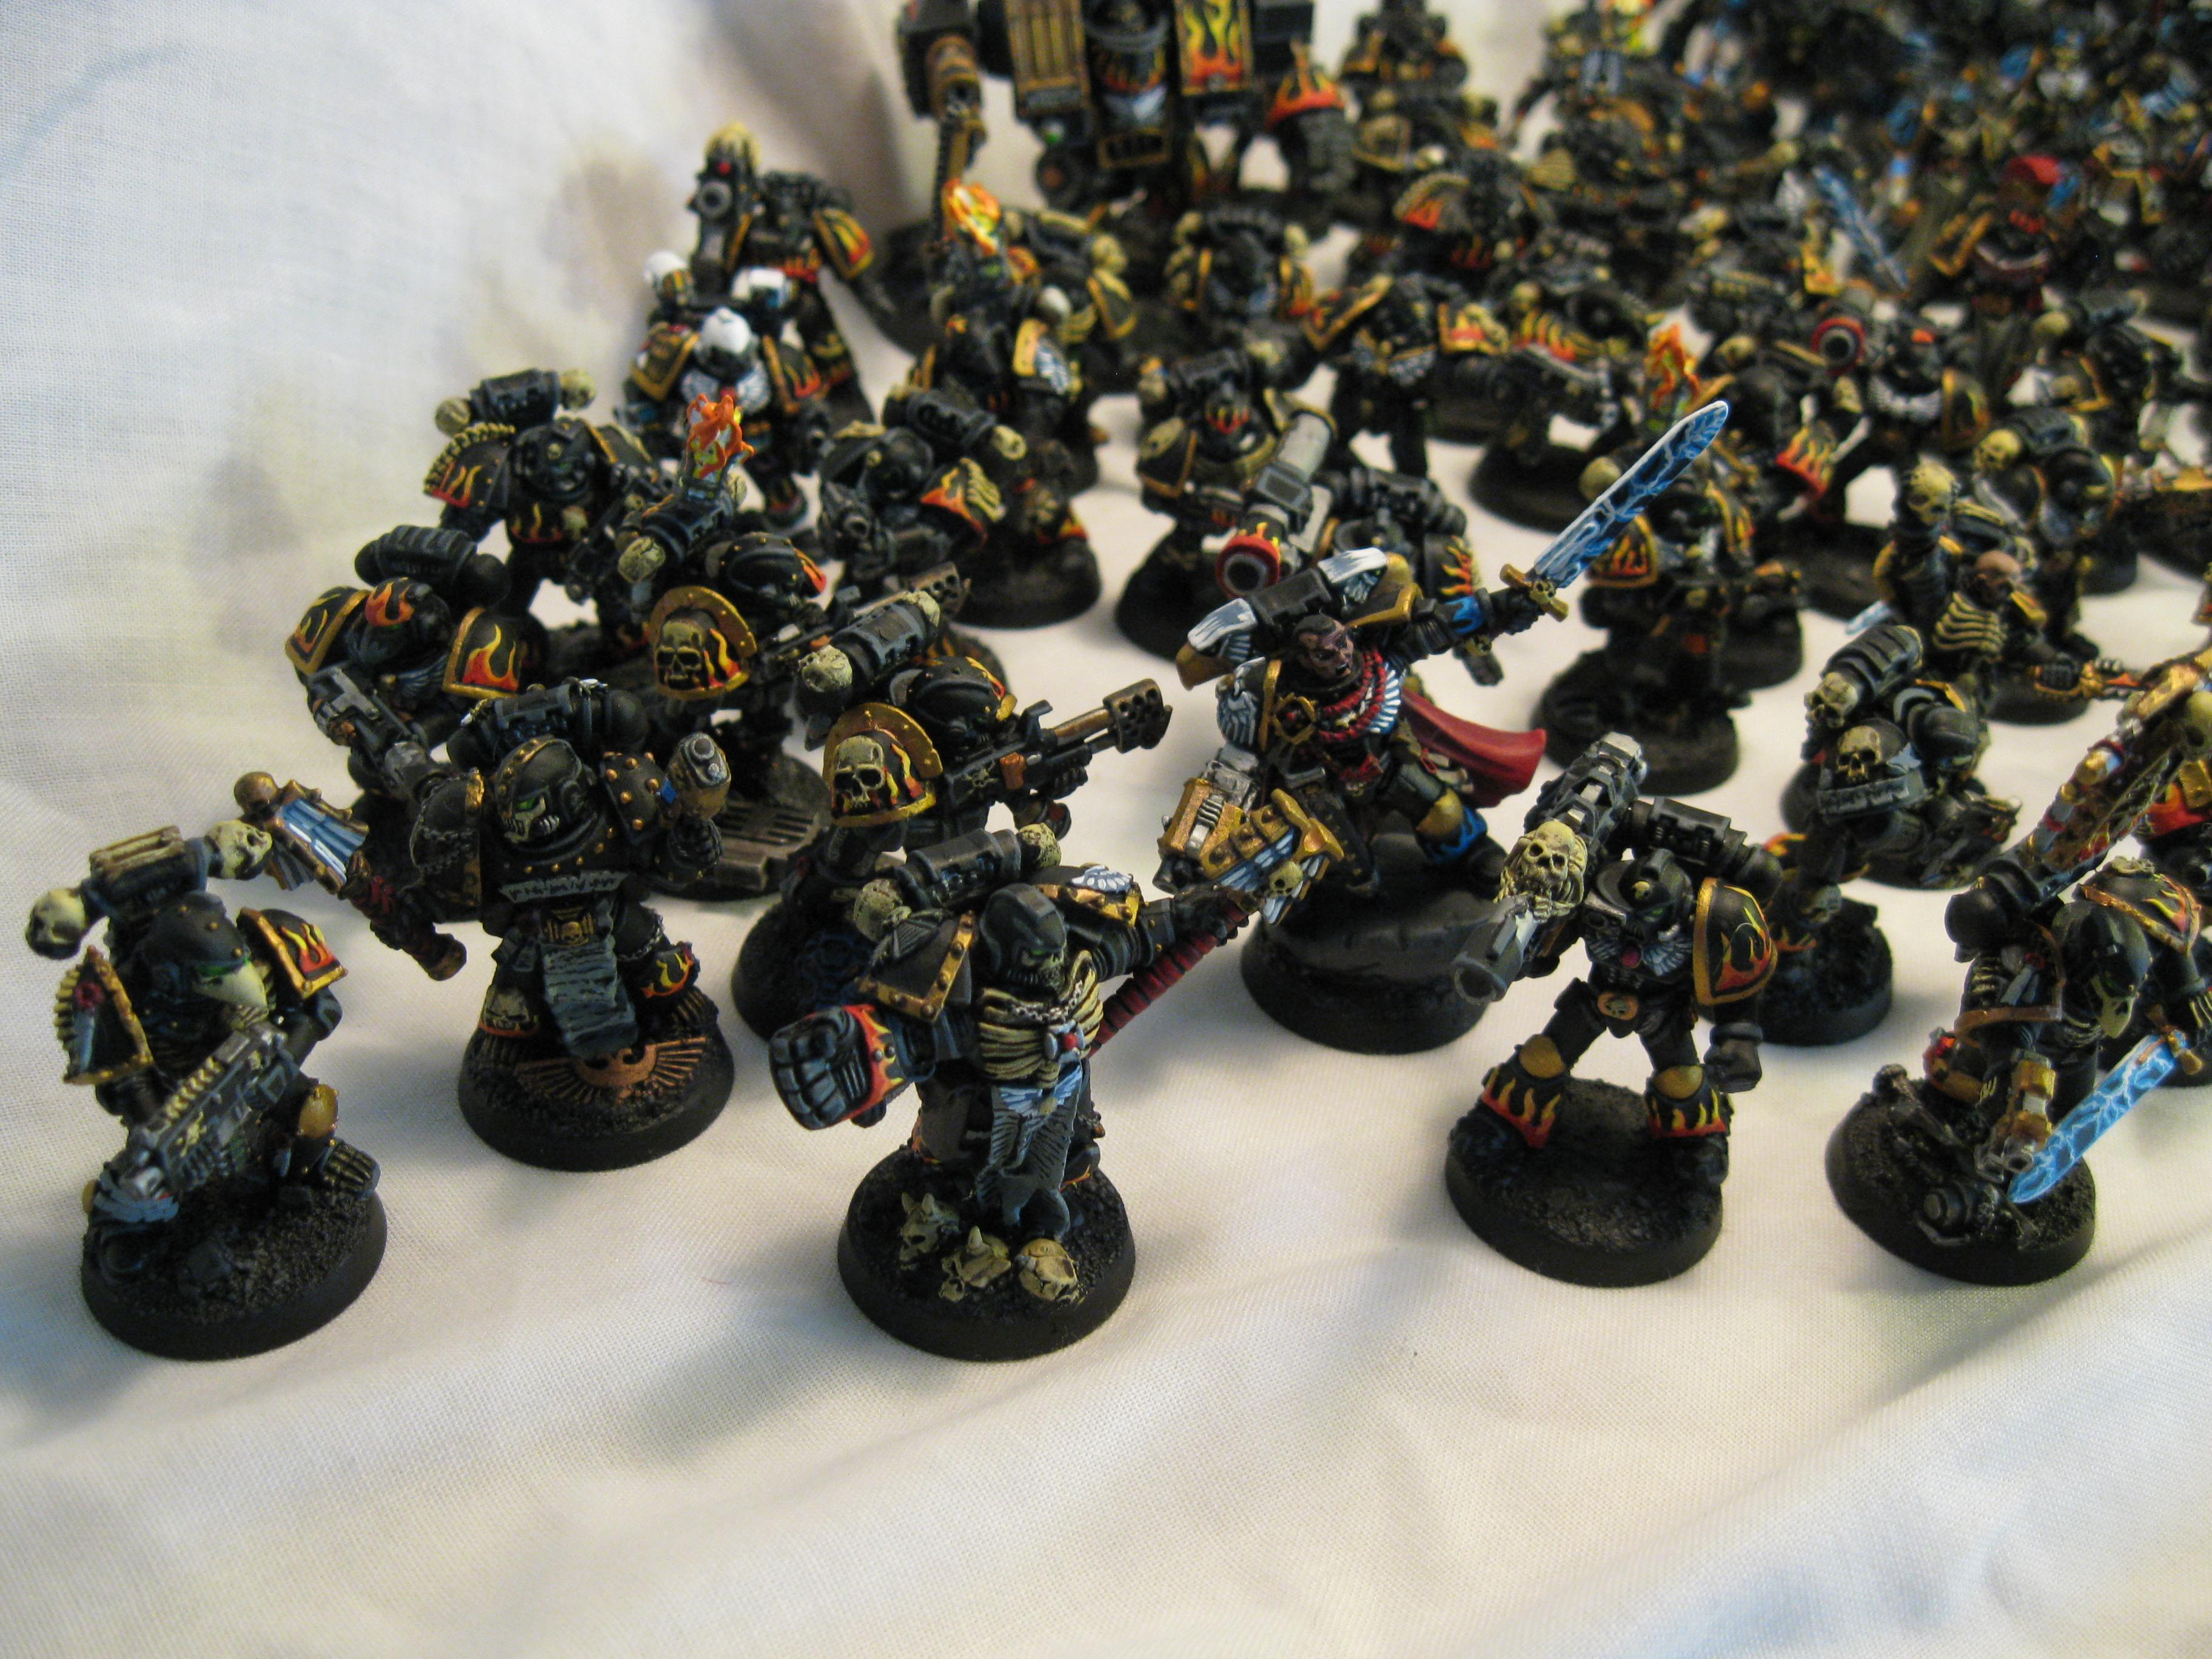 Chaplain, Commission, Legion Of The Damned, Pro Painted, Space Marines, Warhammer 40,000